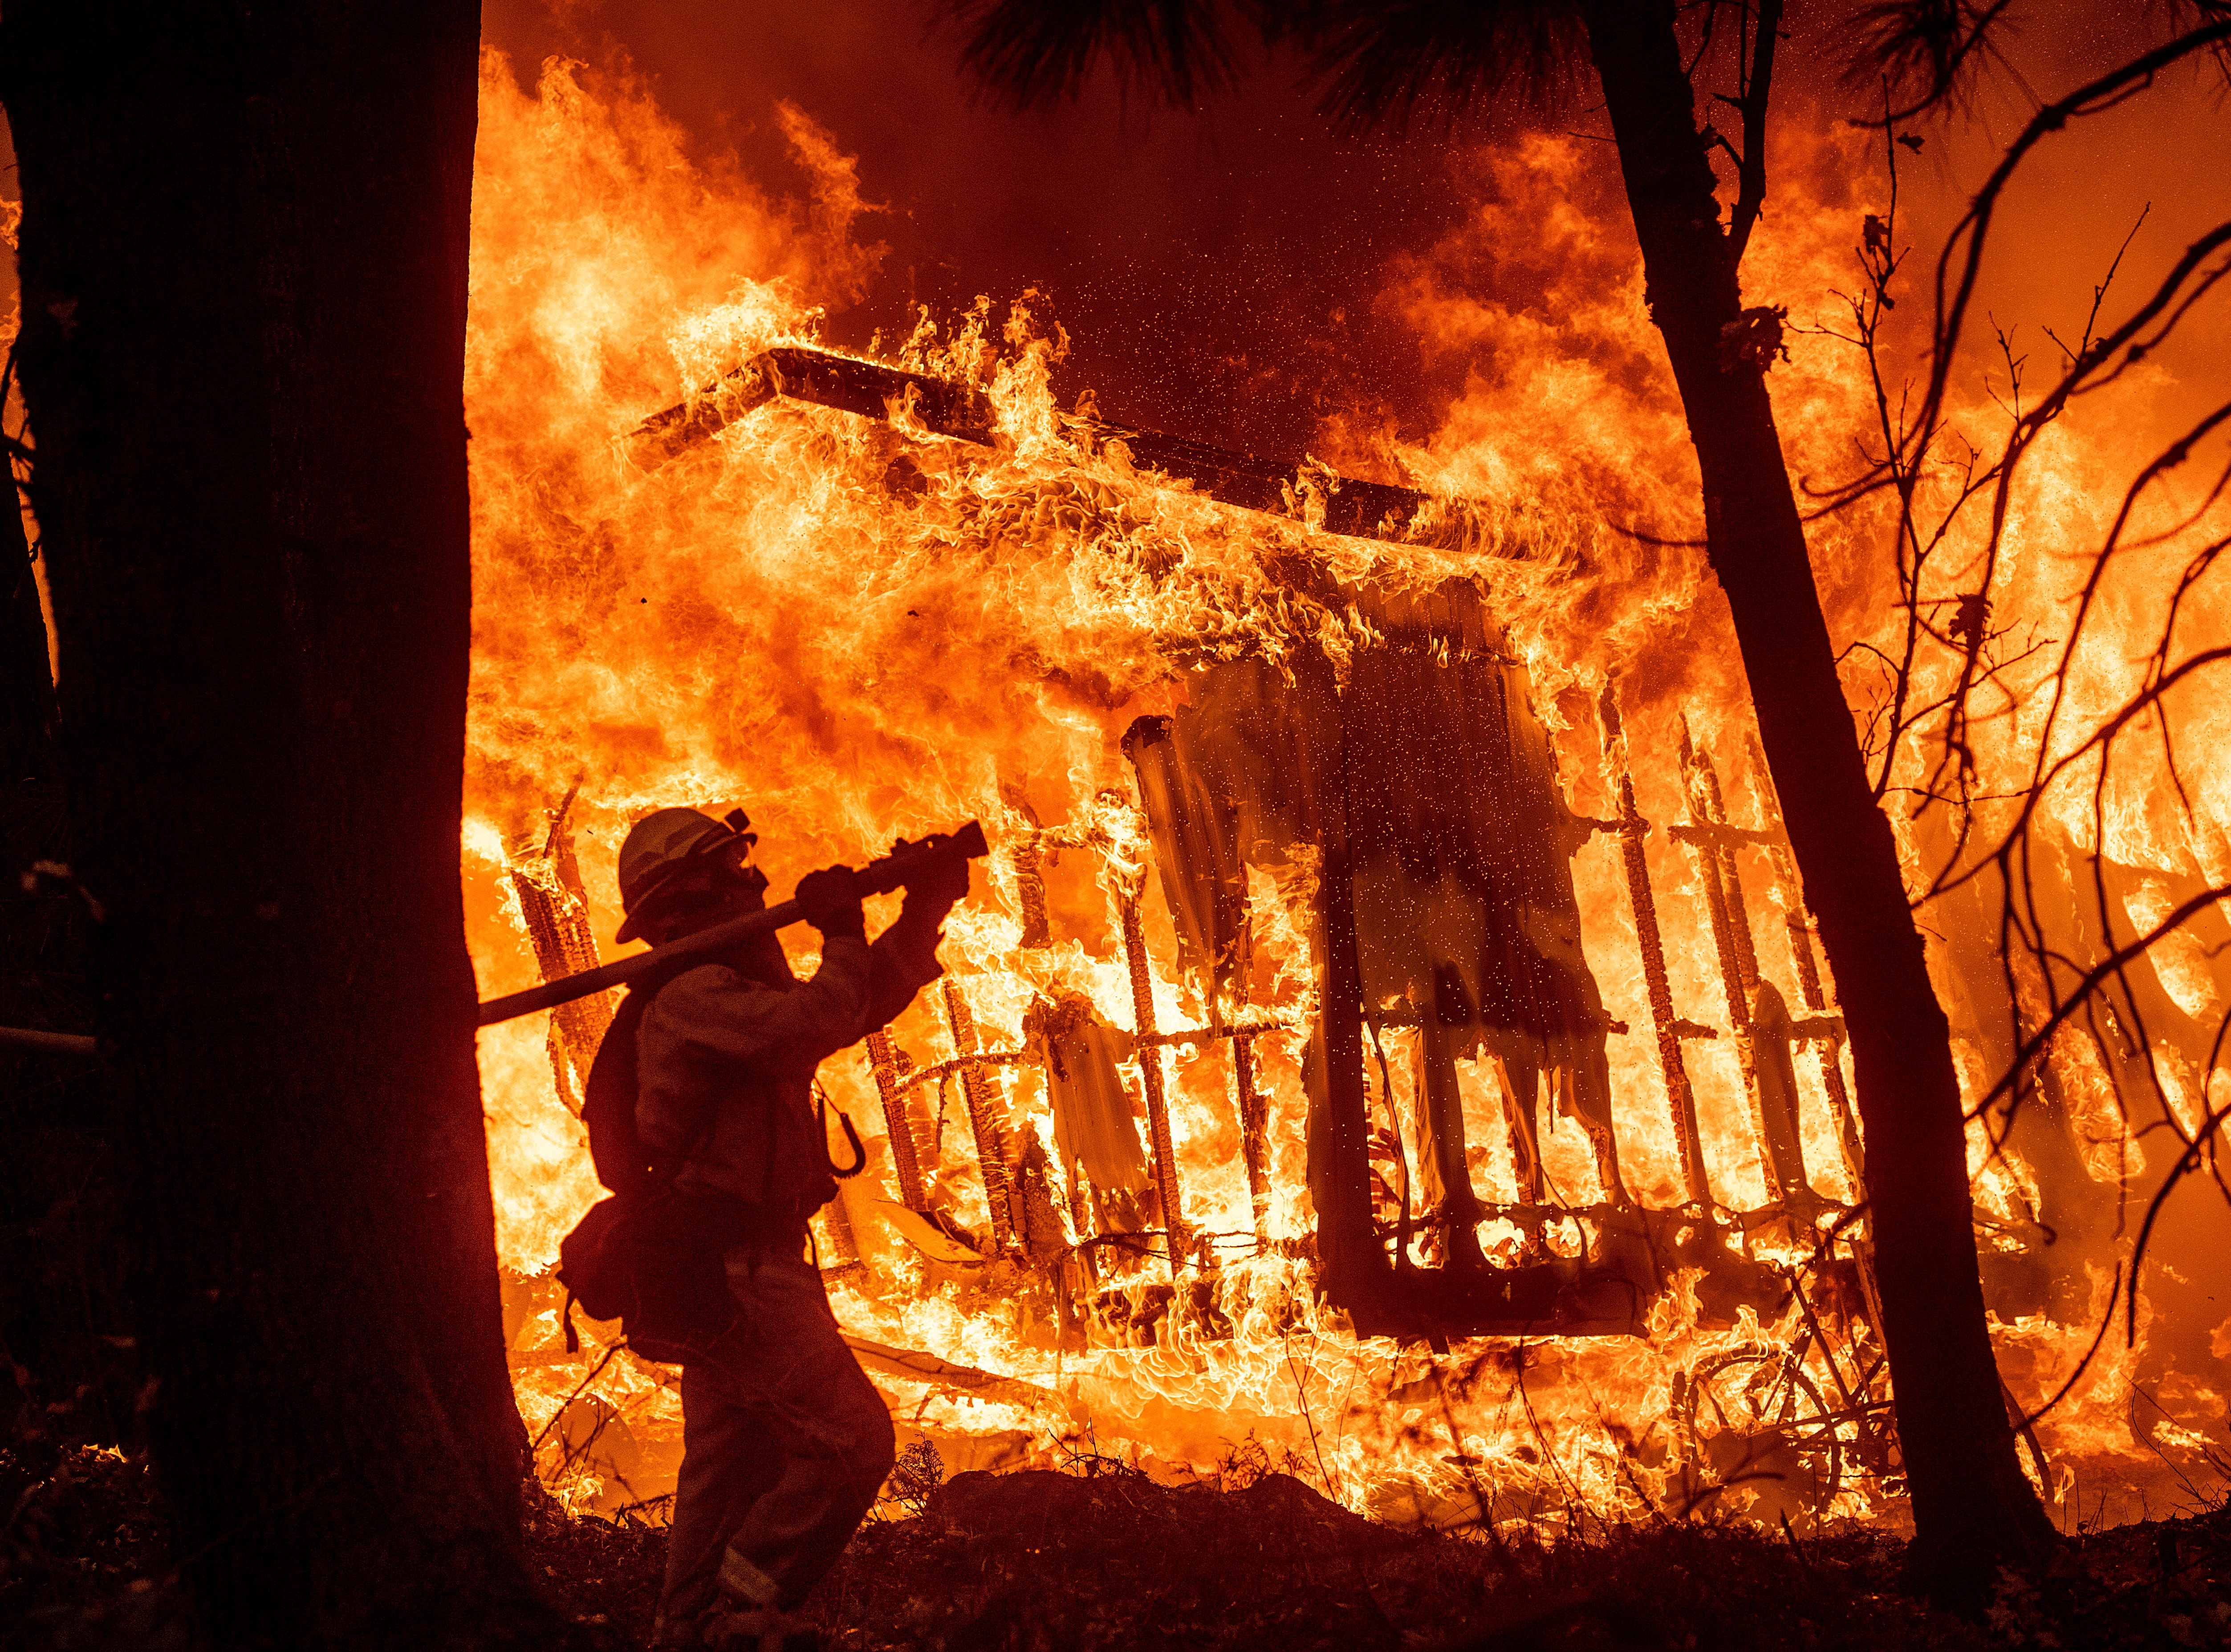 Did PG&E cause the devastating Camp Fire? California utility's stock is plunging